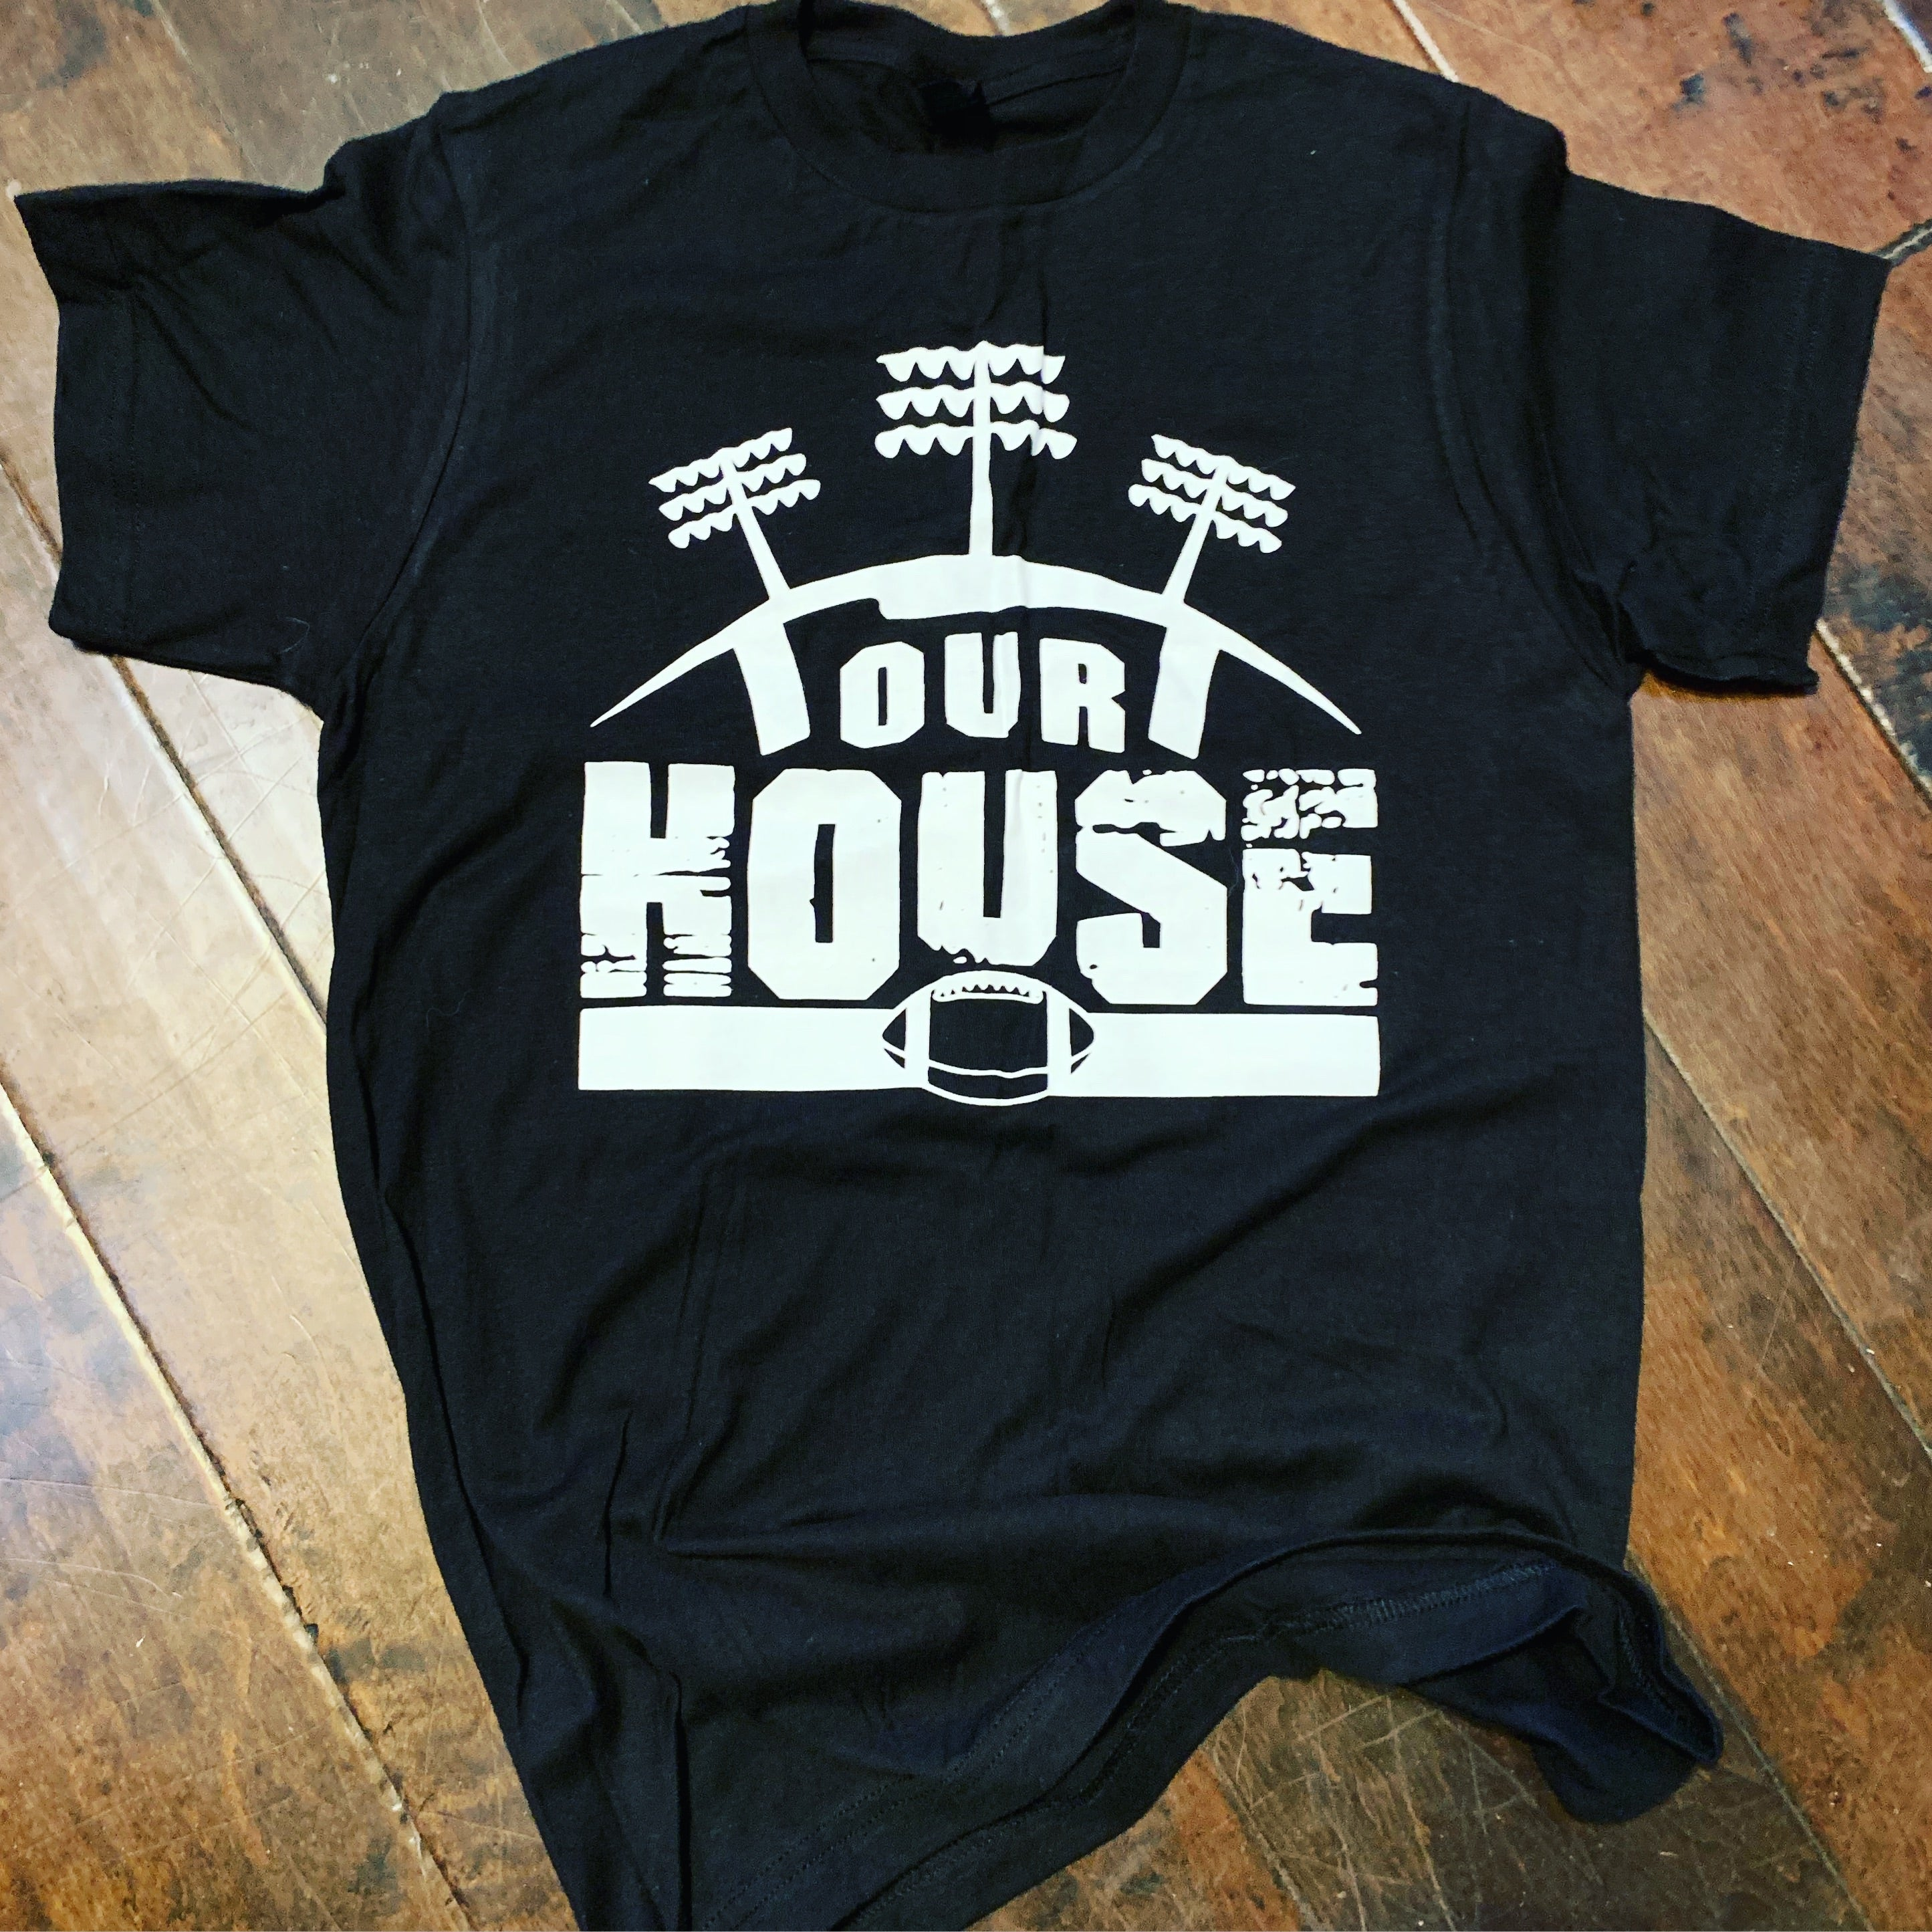 Our House Tee